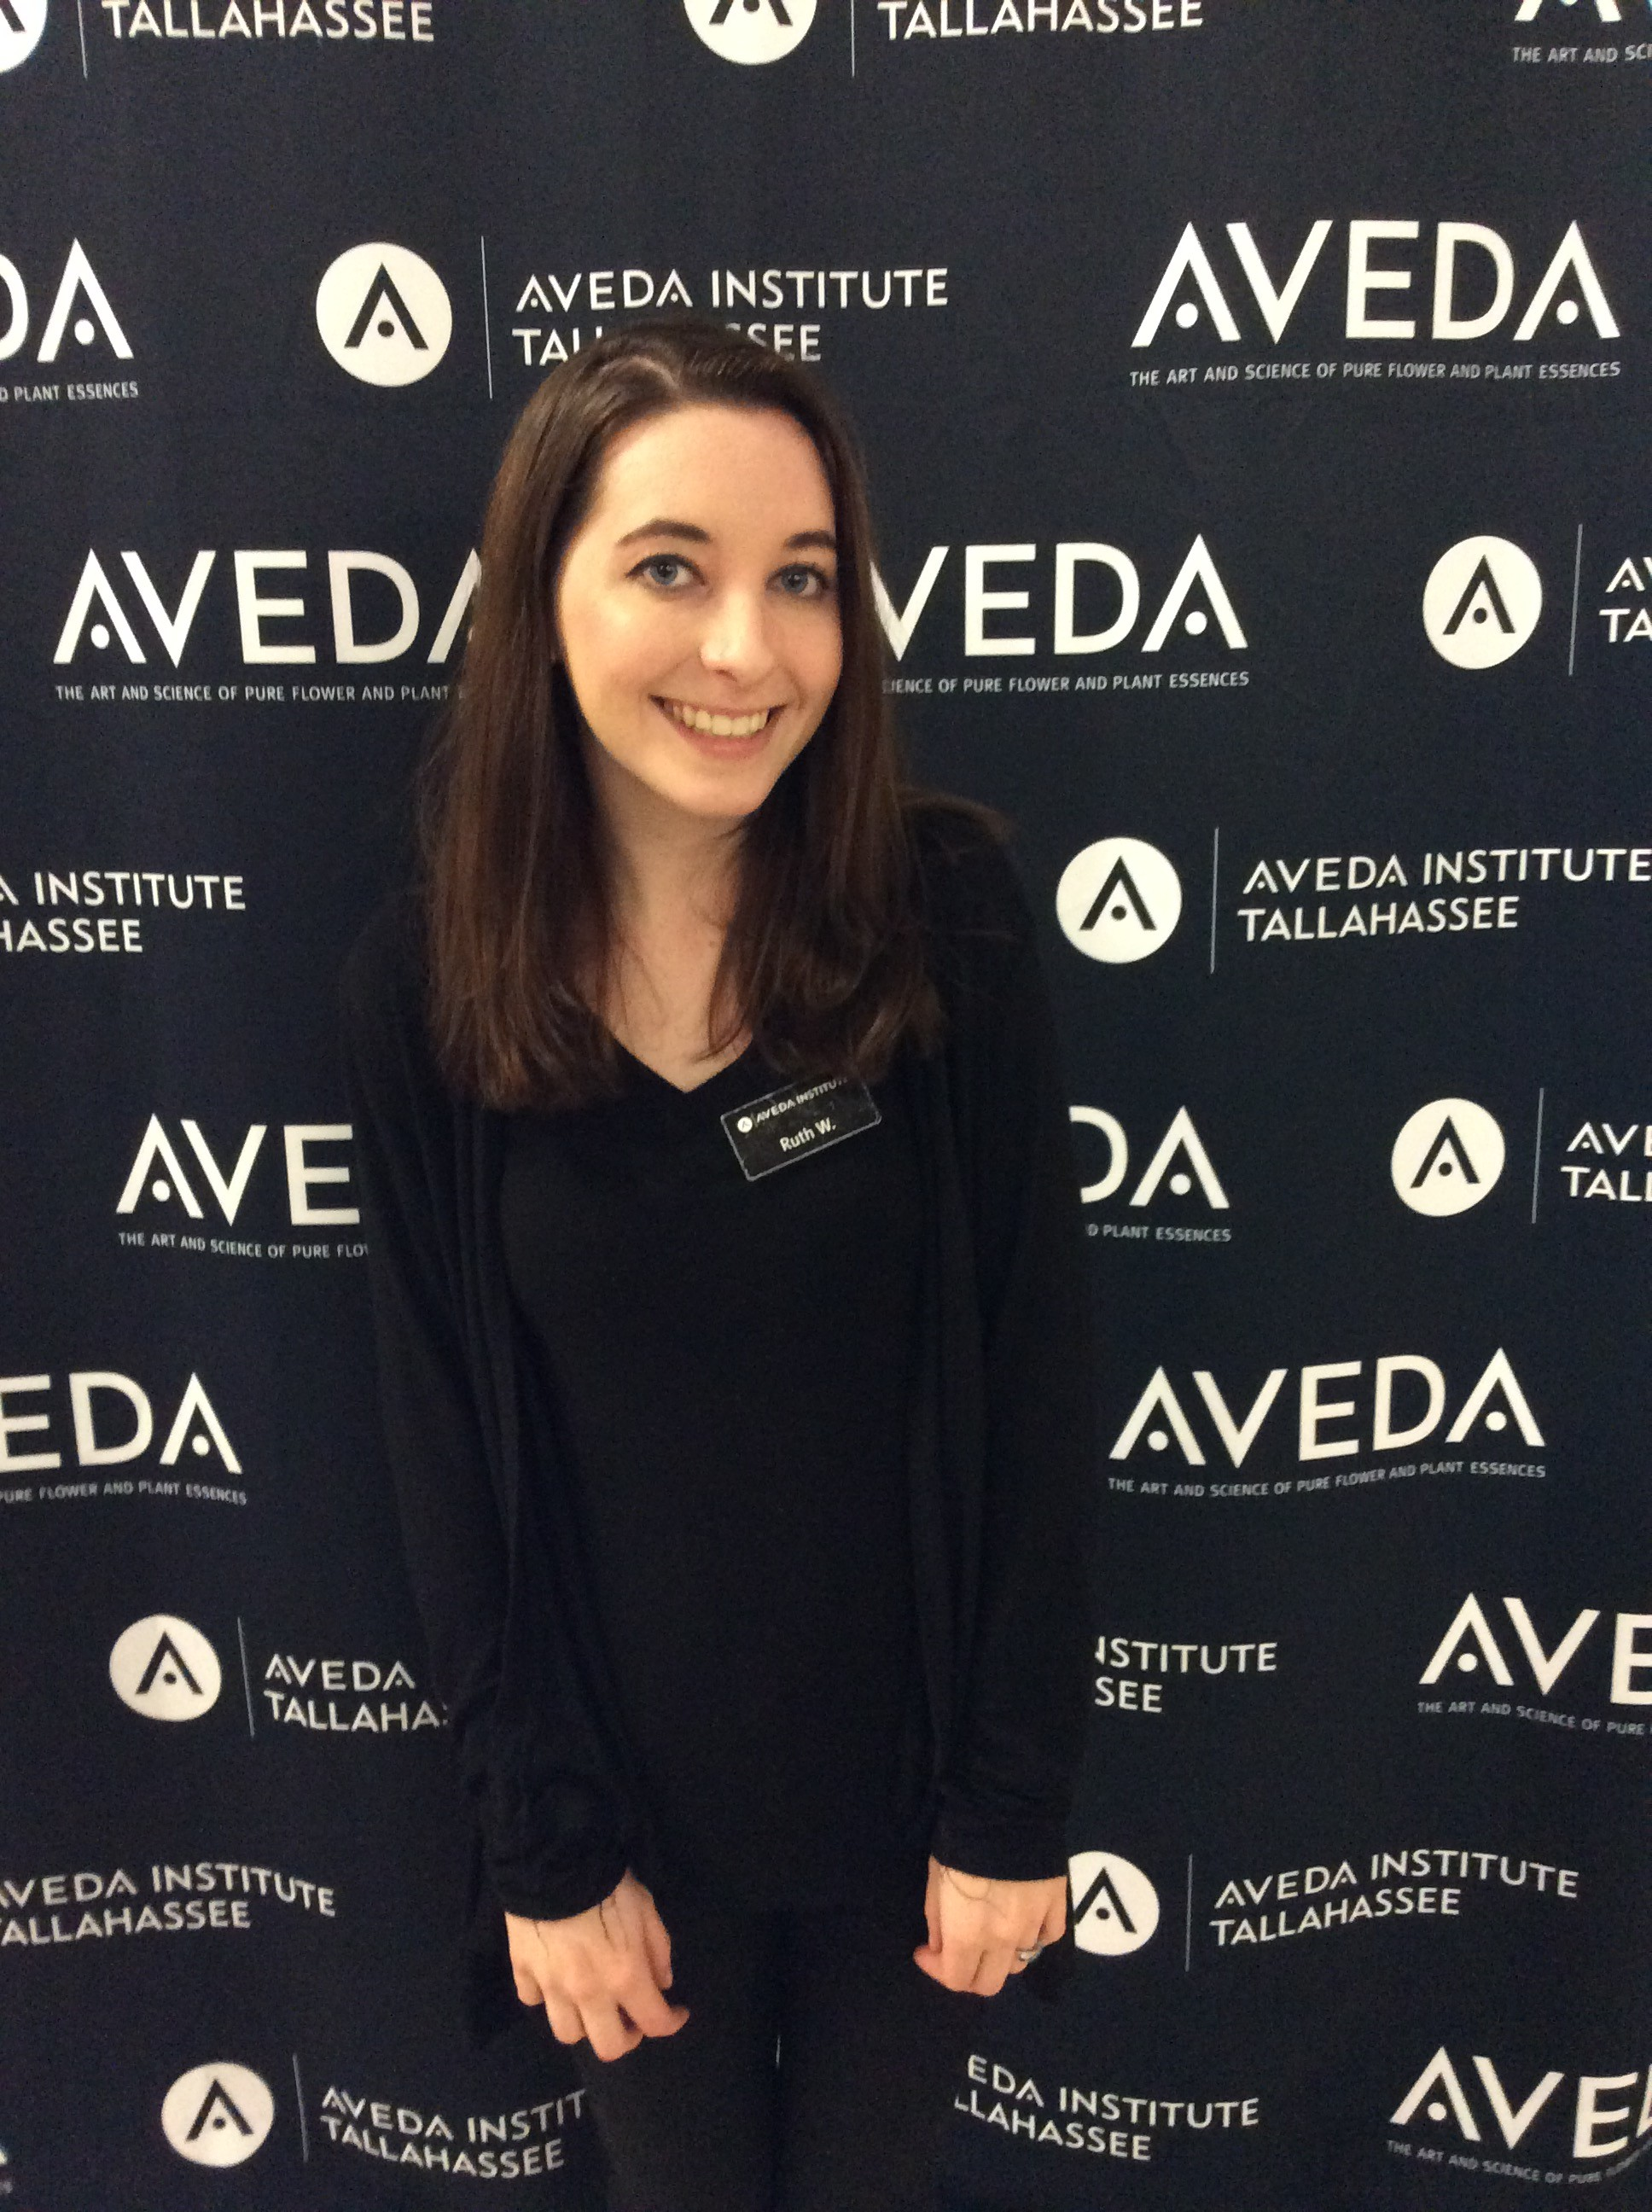 aveda beauty school student